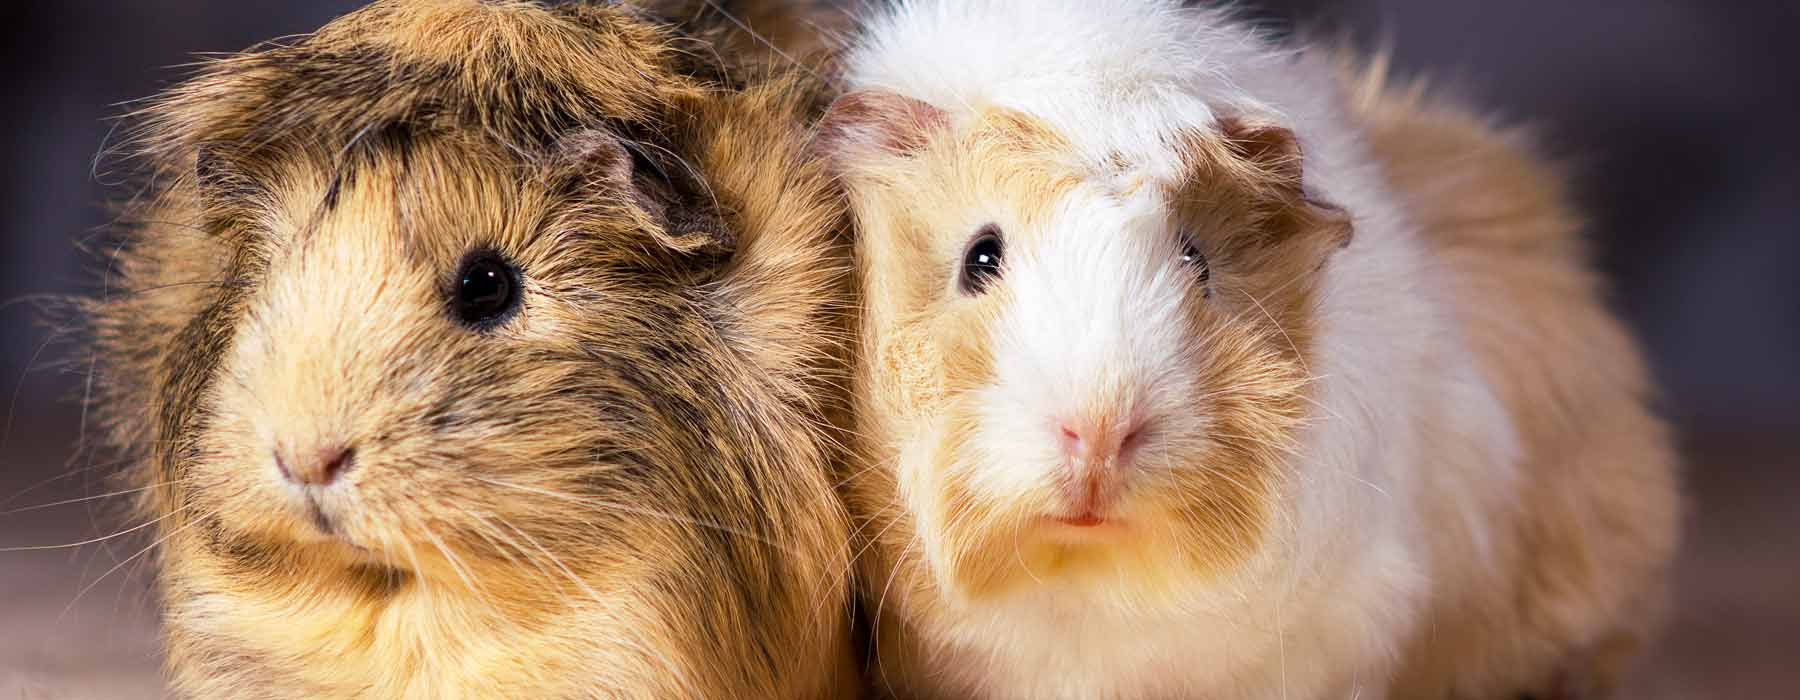 pair of cute guinea pigs side by side